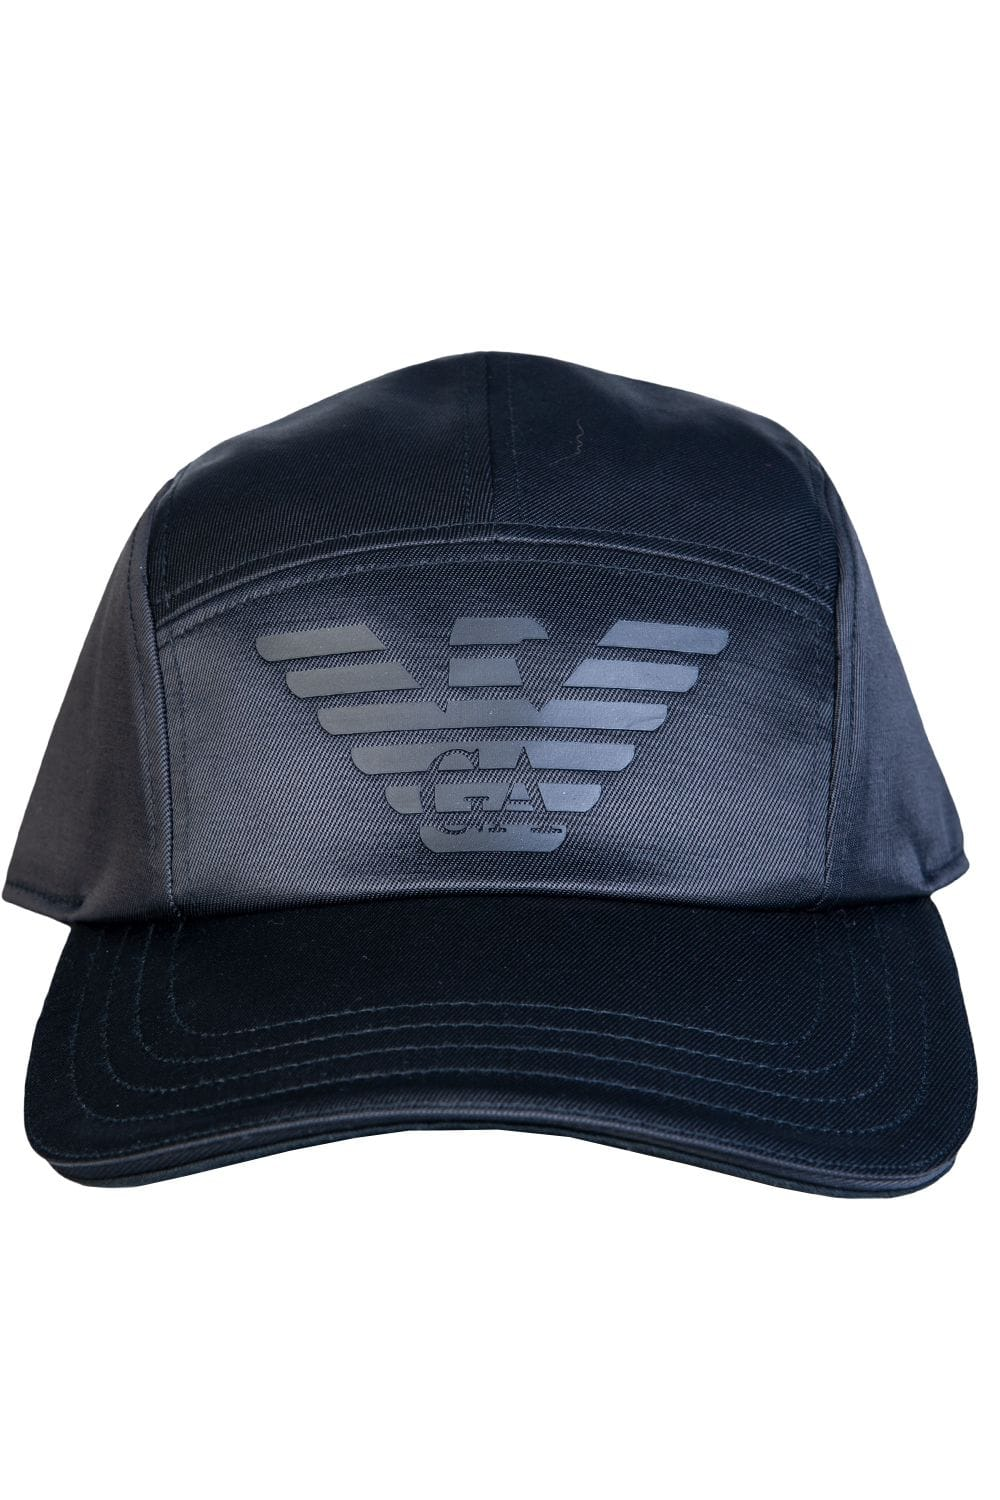 Emporio Armani Cap Baseball 627325 8A501 - Accessories from Sage Clothing UK c92b4730c60c